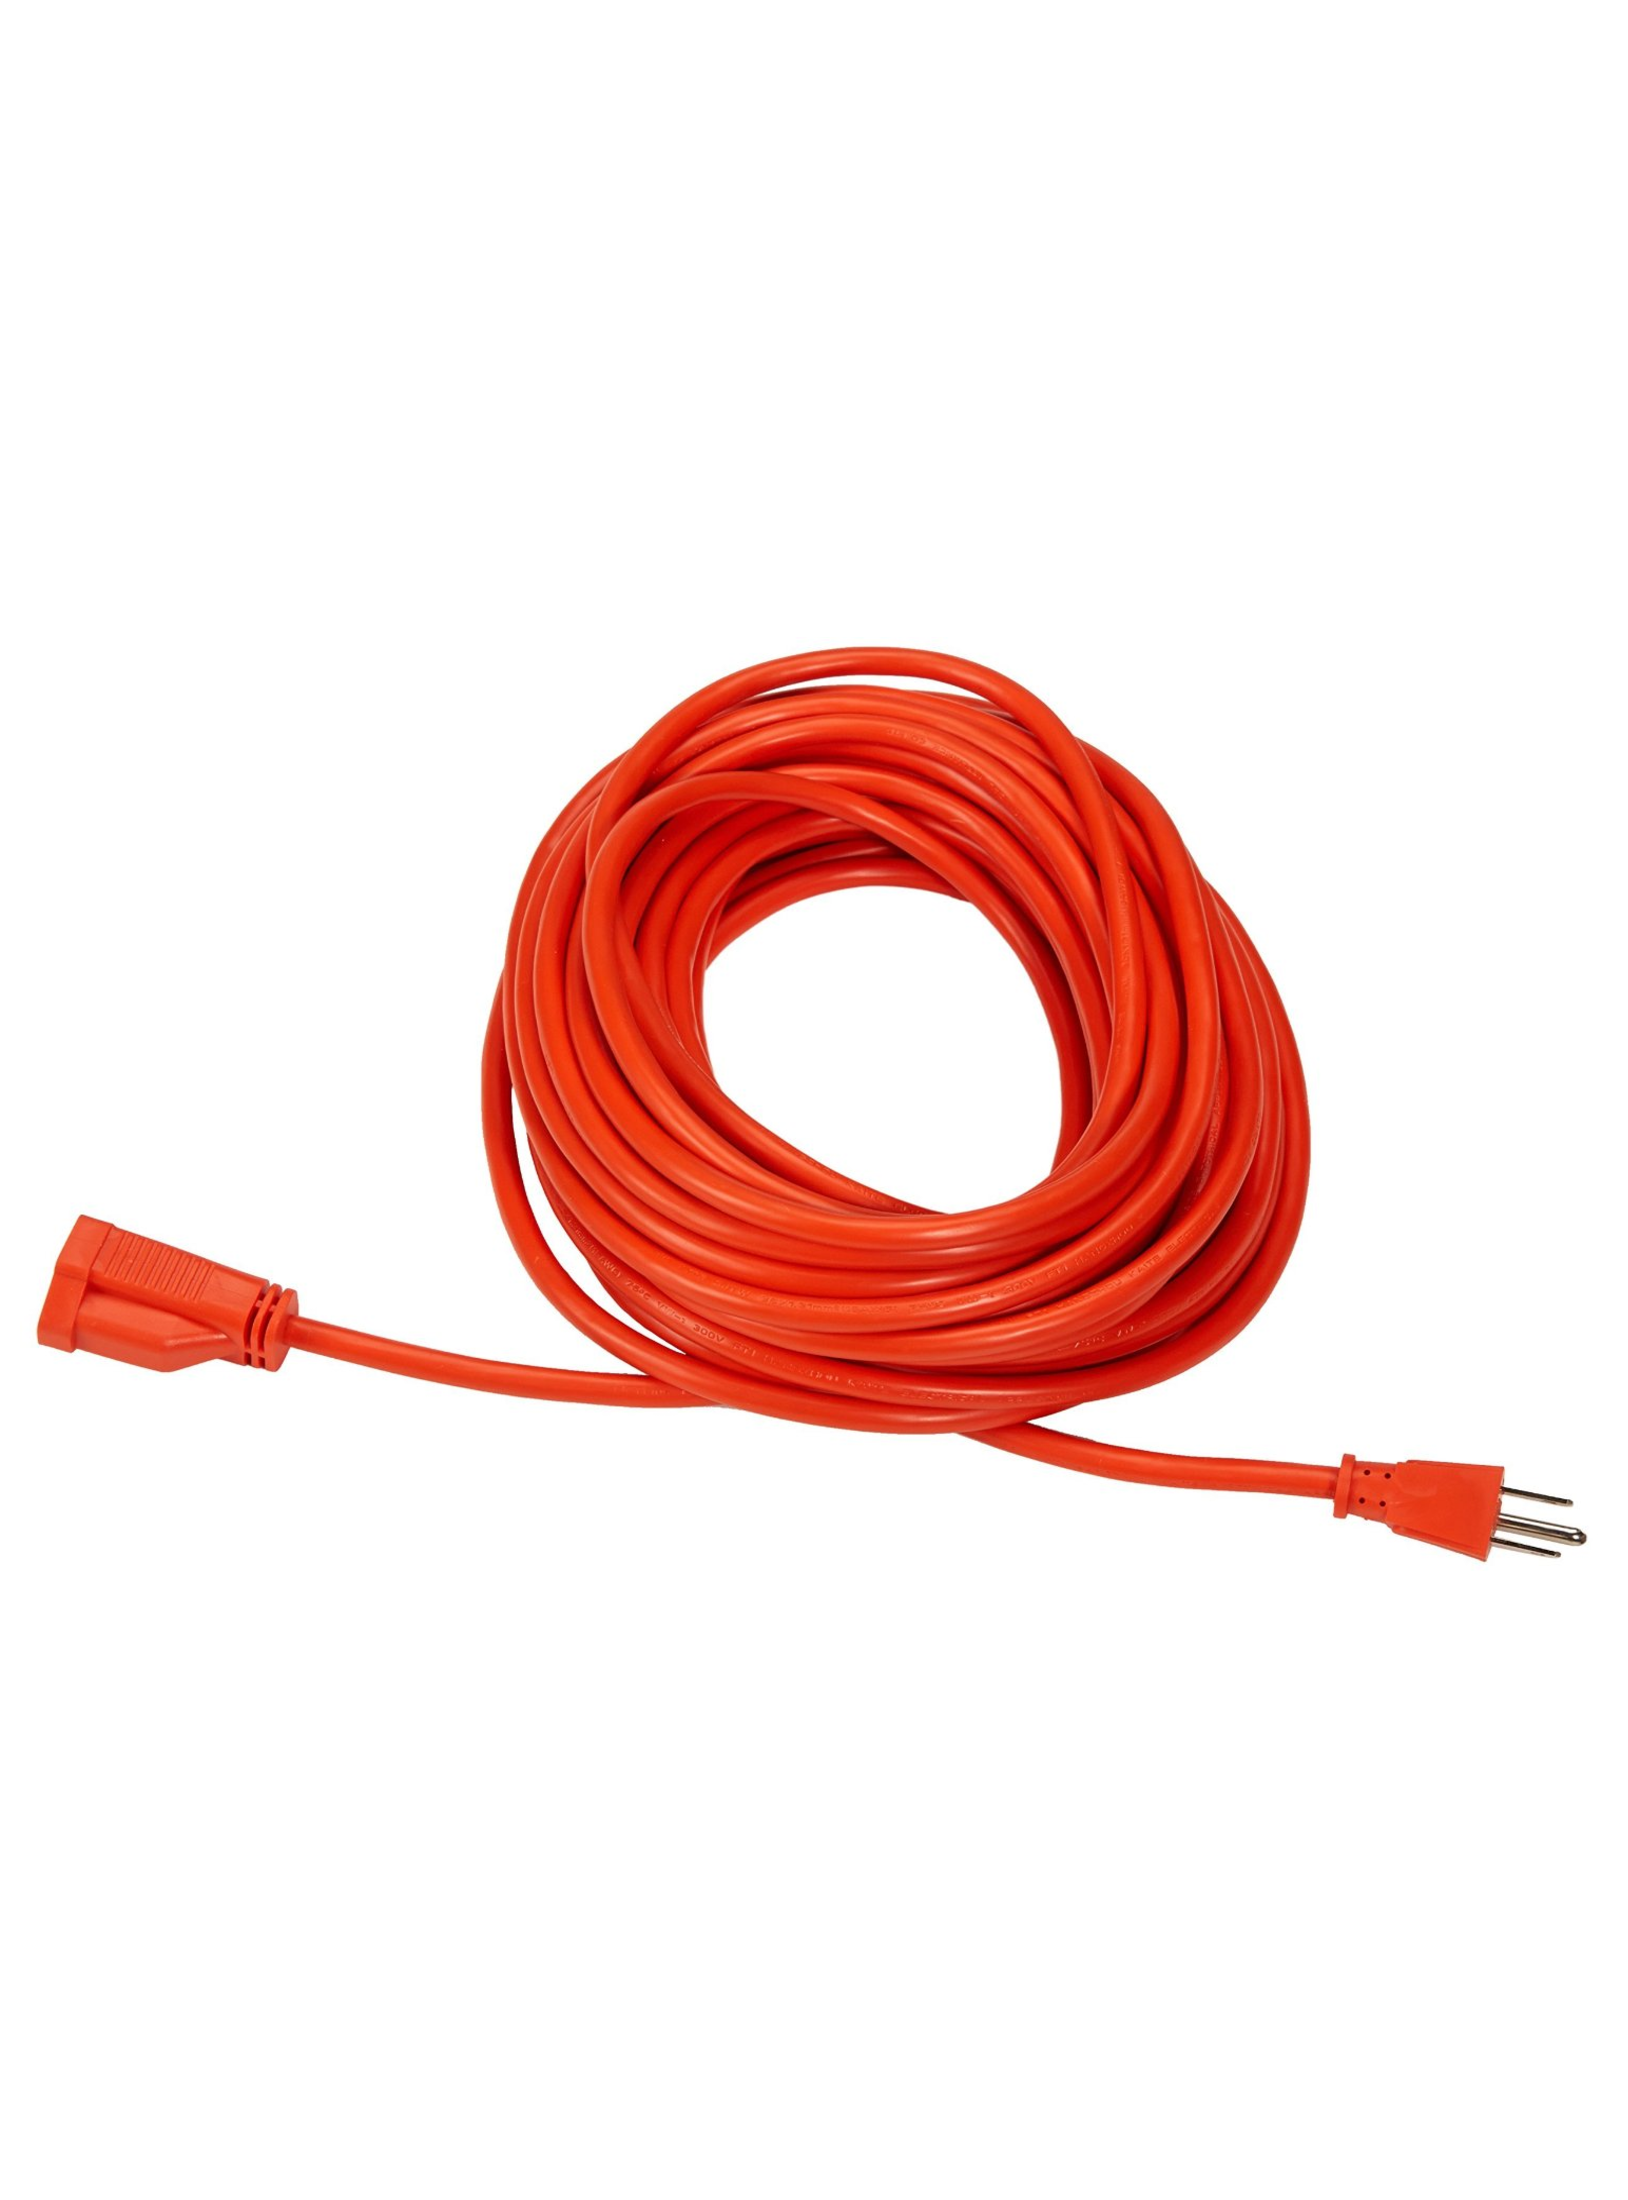 Best Tools To Own Most Useful Have At Home Wiring Materials List